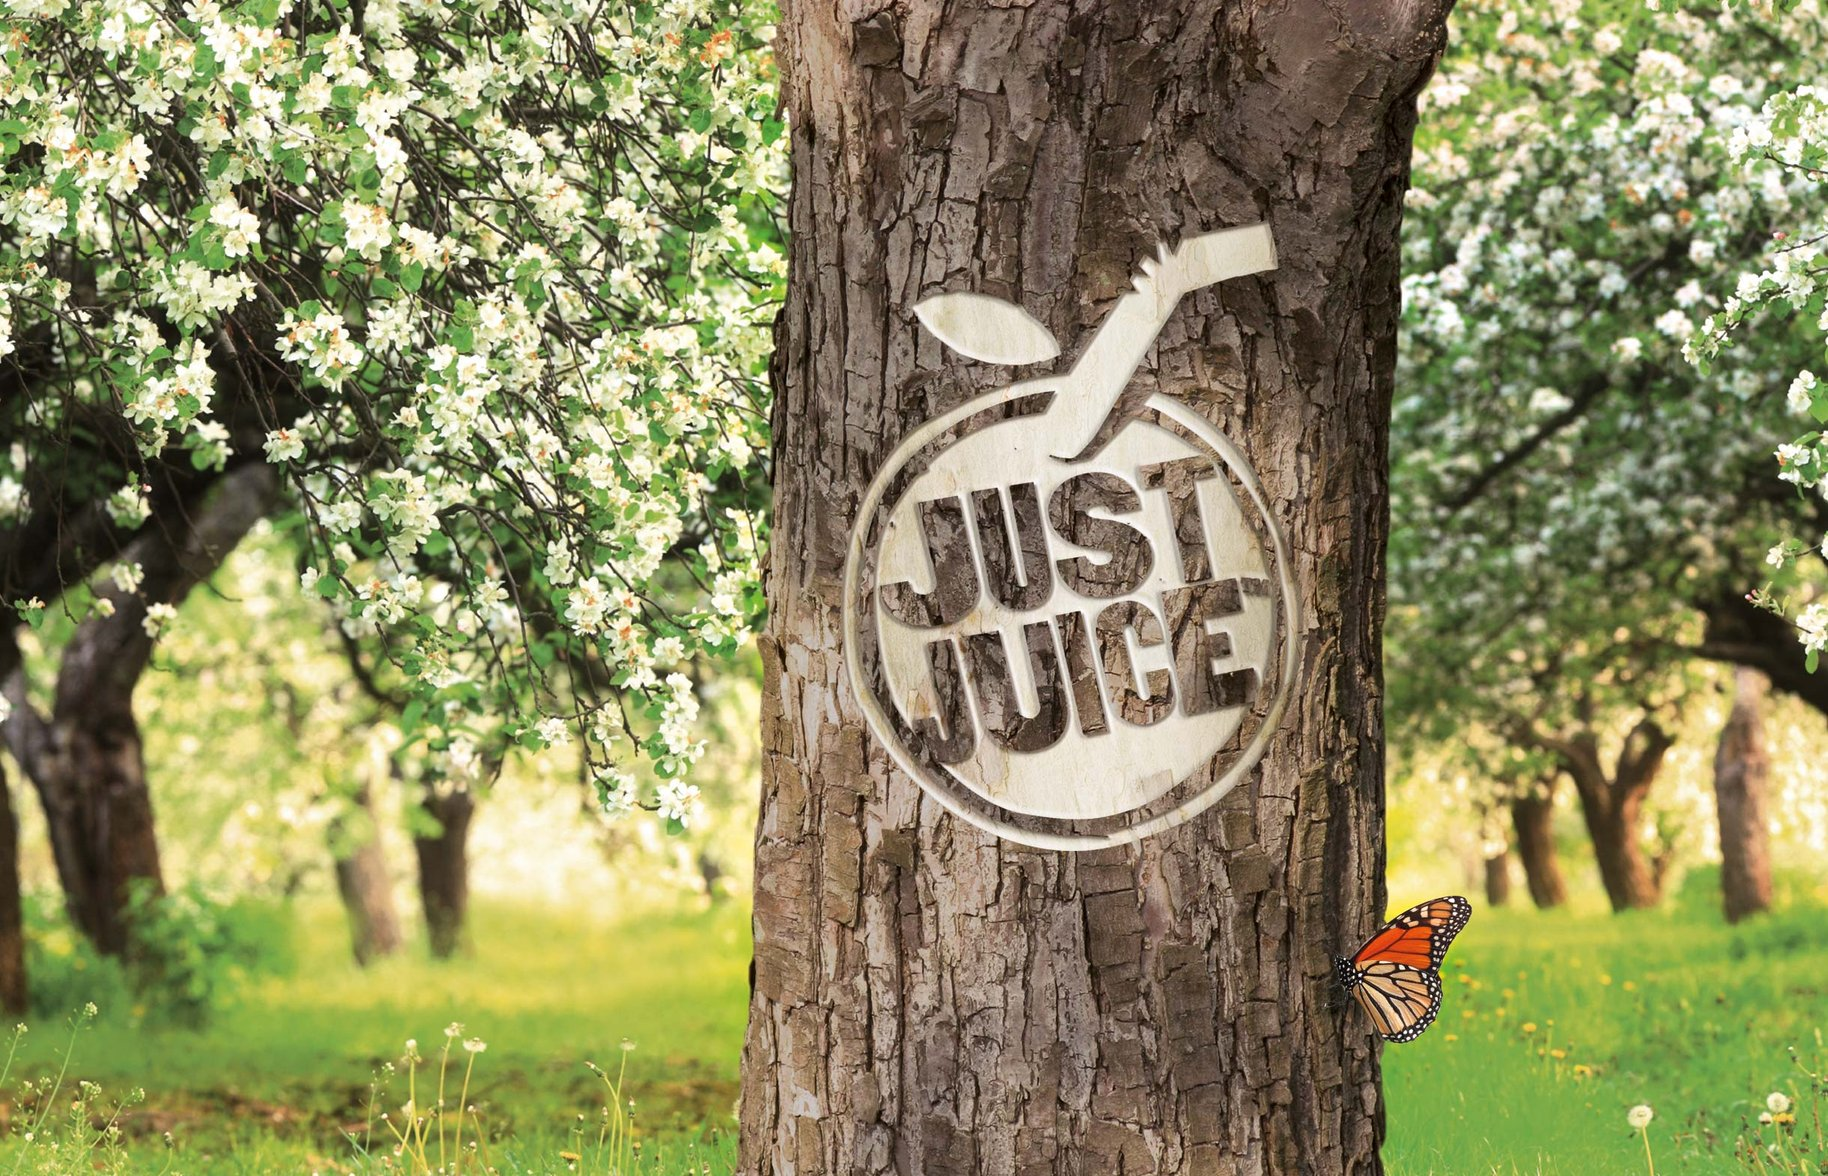 Just Juice logo carved tree